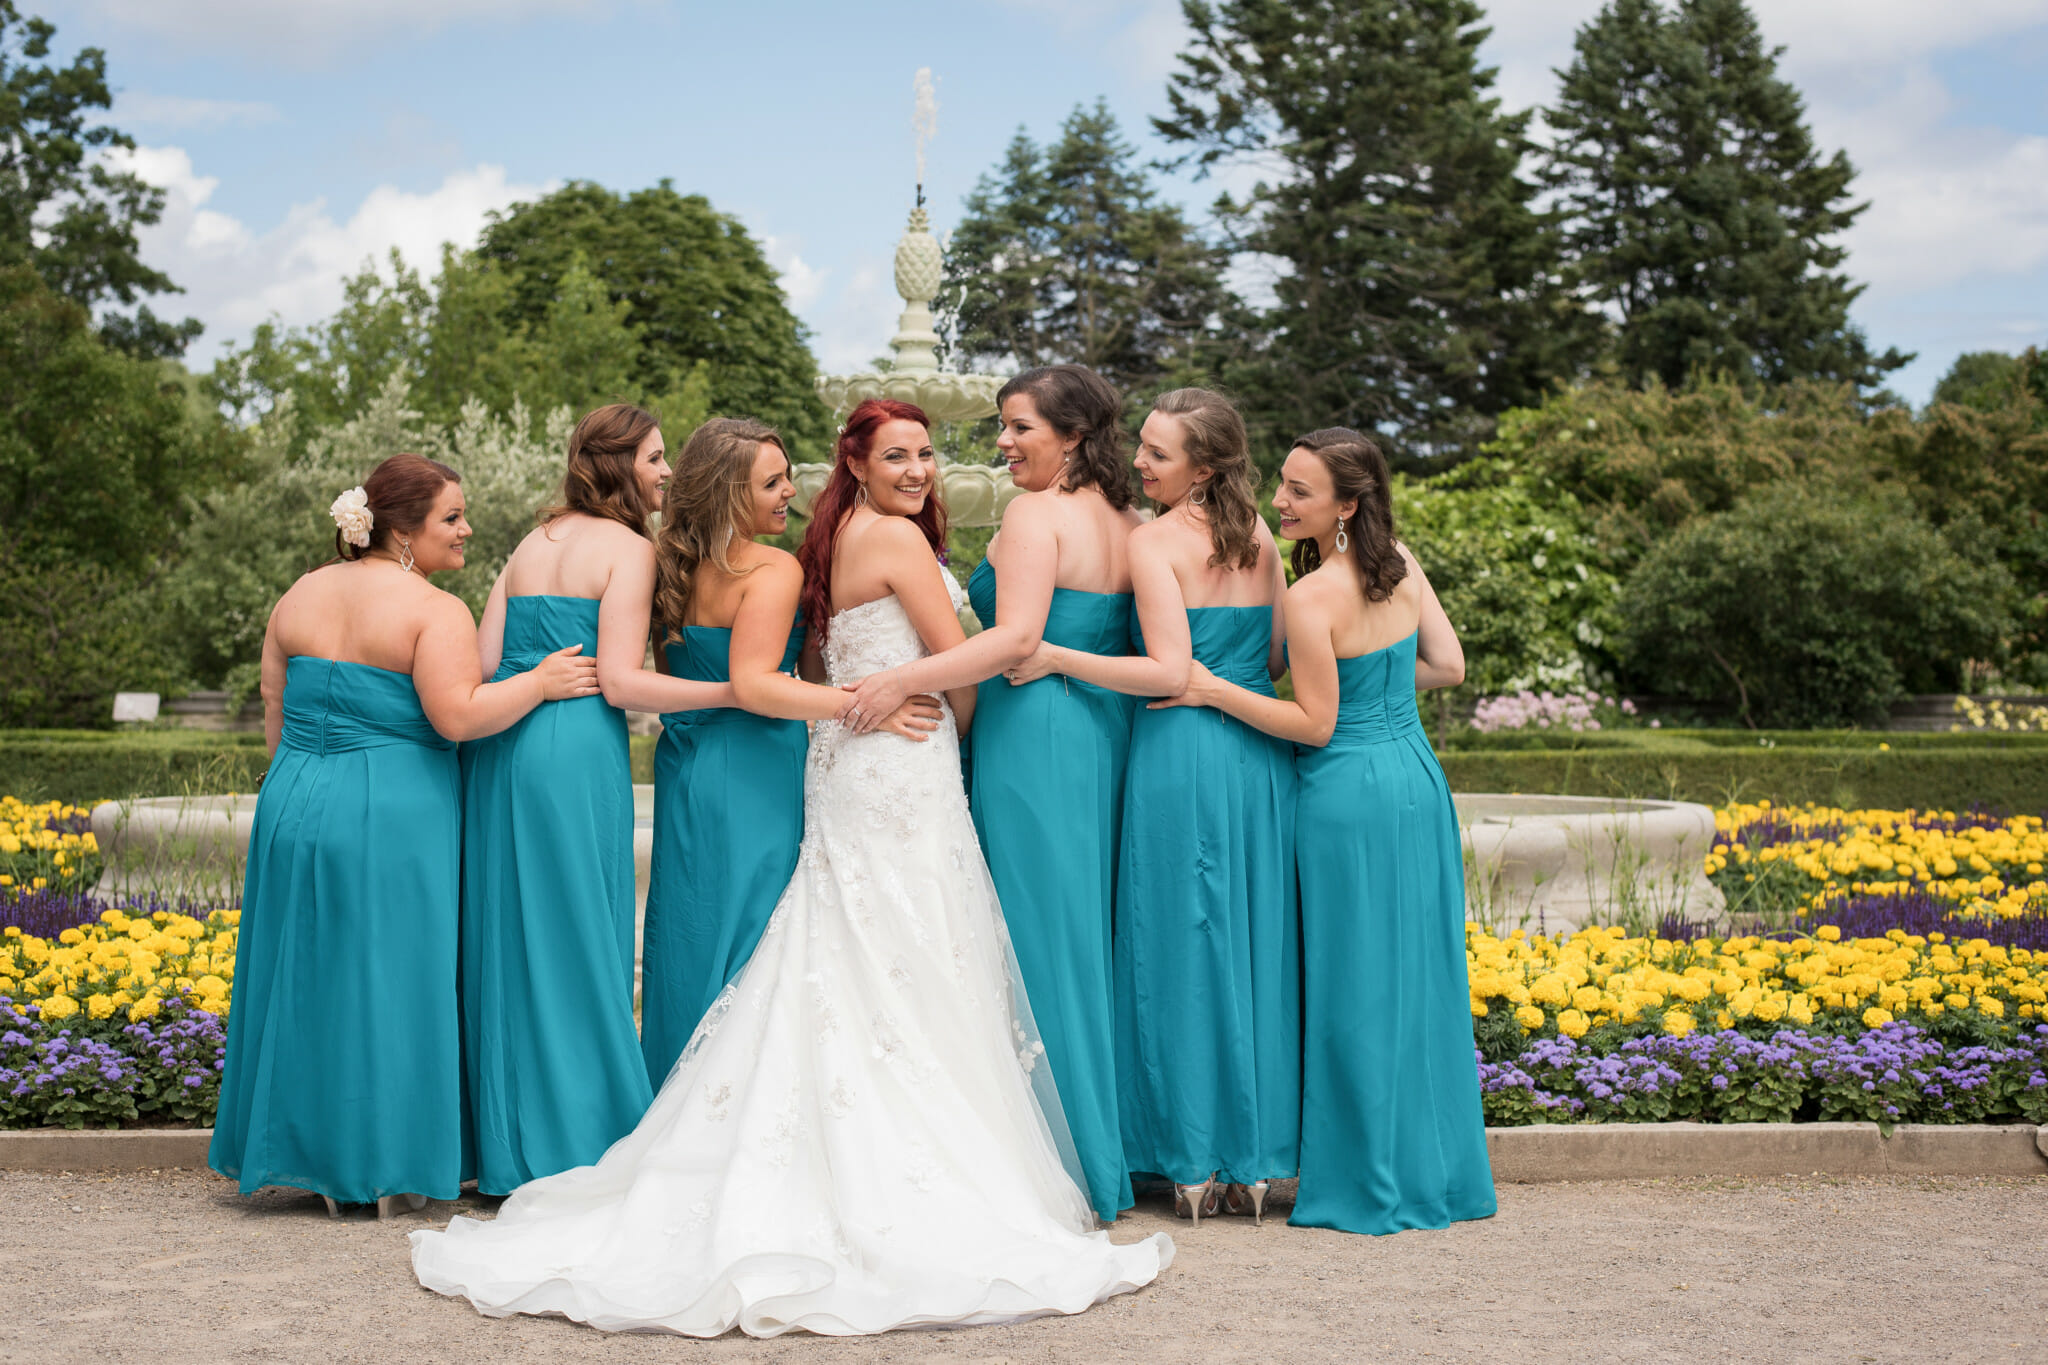 royal botanical gardens burlington wedding